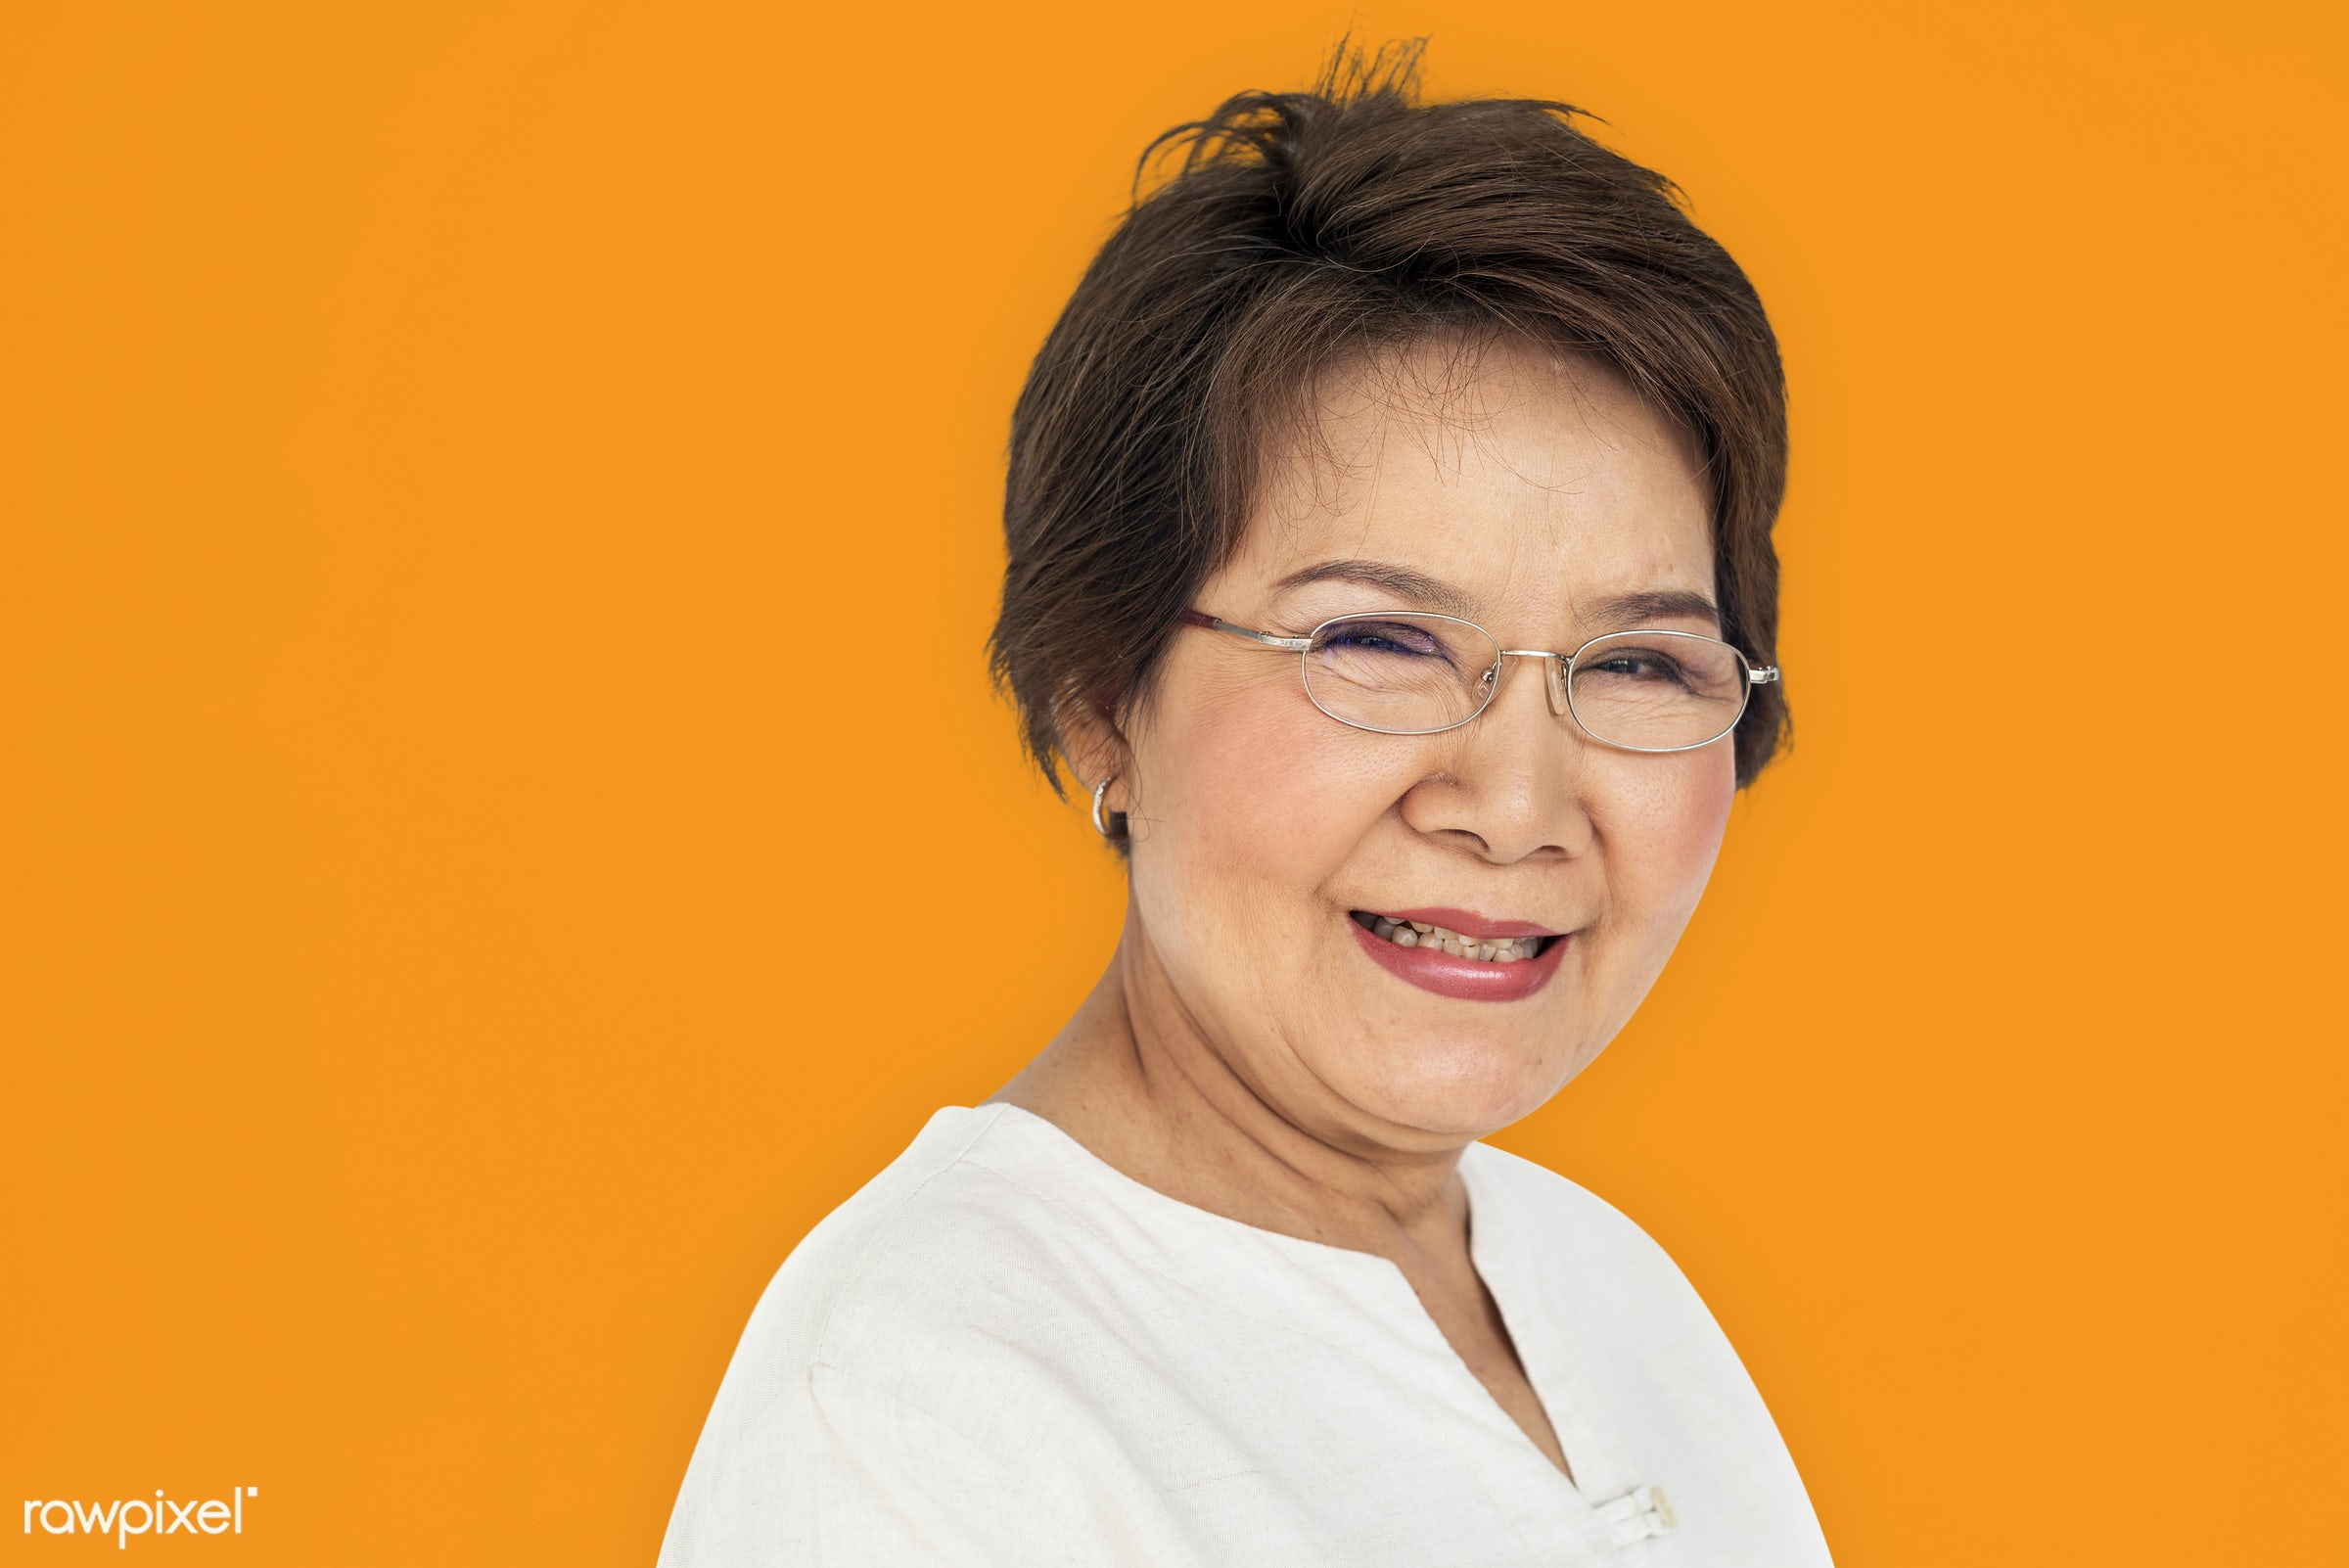 expression, studio, person, people, asian, woman, cheerful, smiling, isolated, orange, happiness, portrait, emotion,...